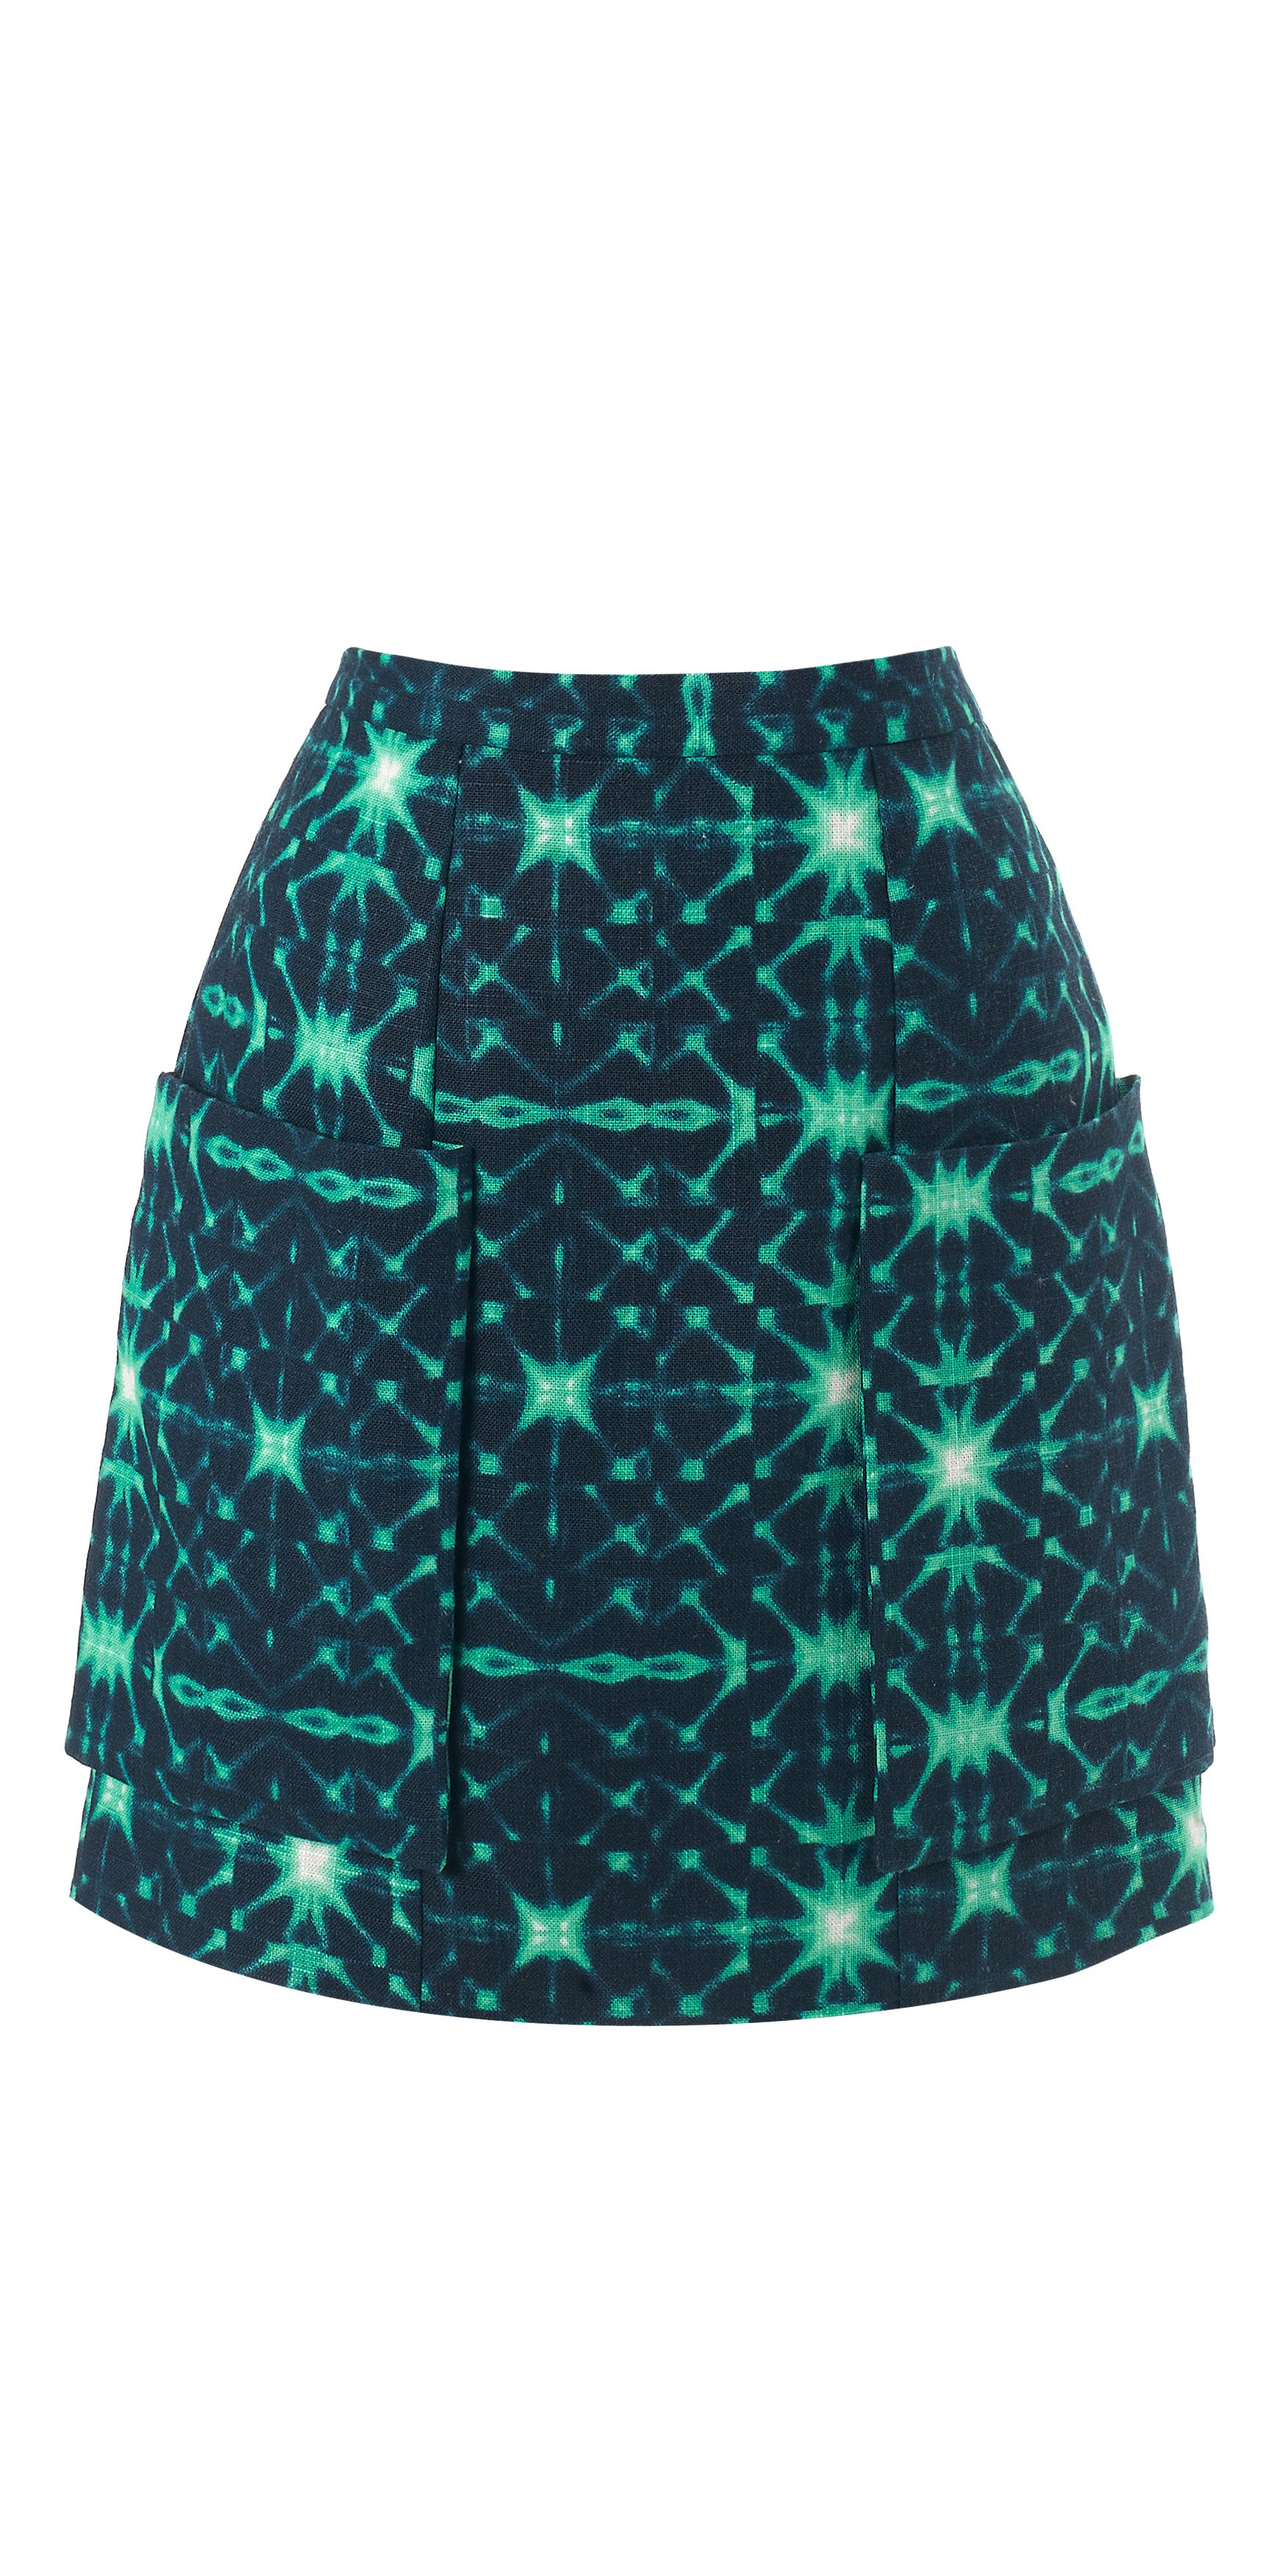 Kalidoscope pocket skirt